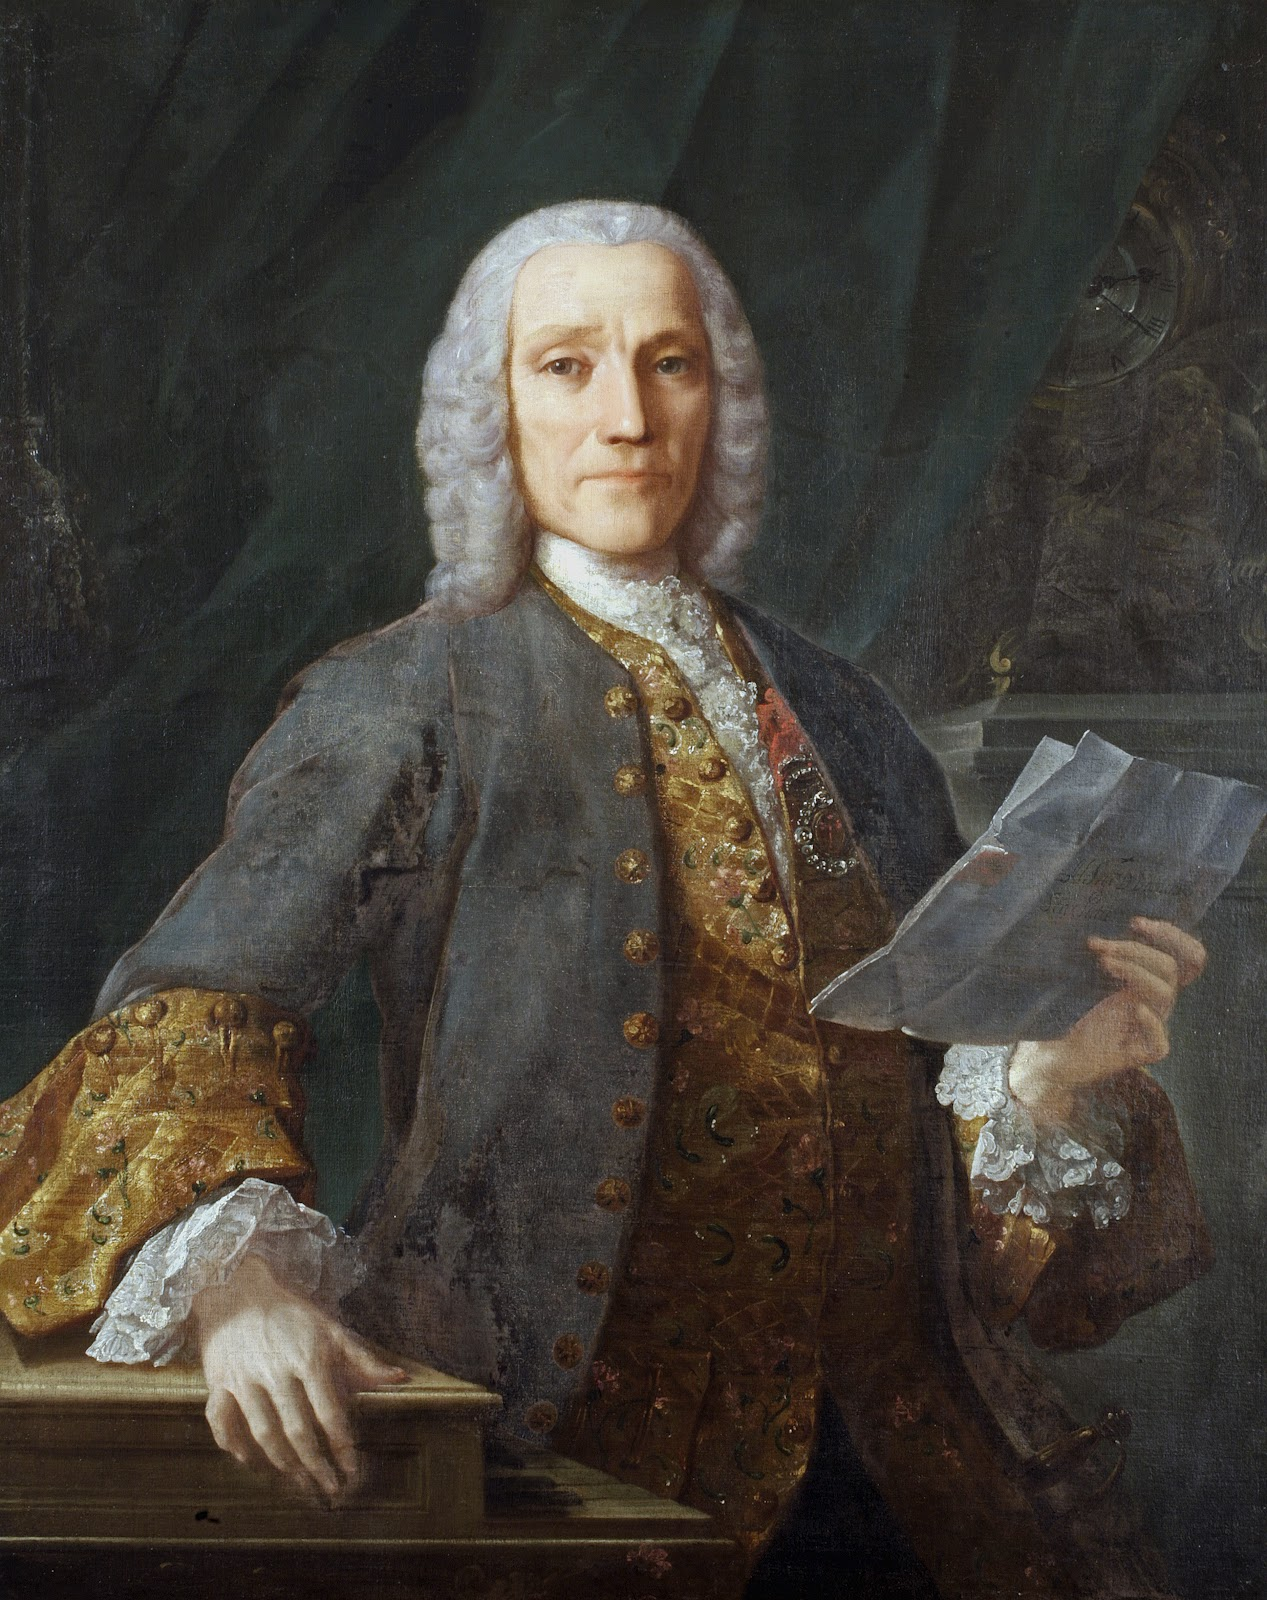 Biography of Domenico Scarlatti